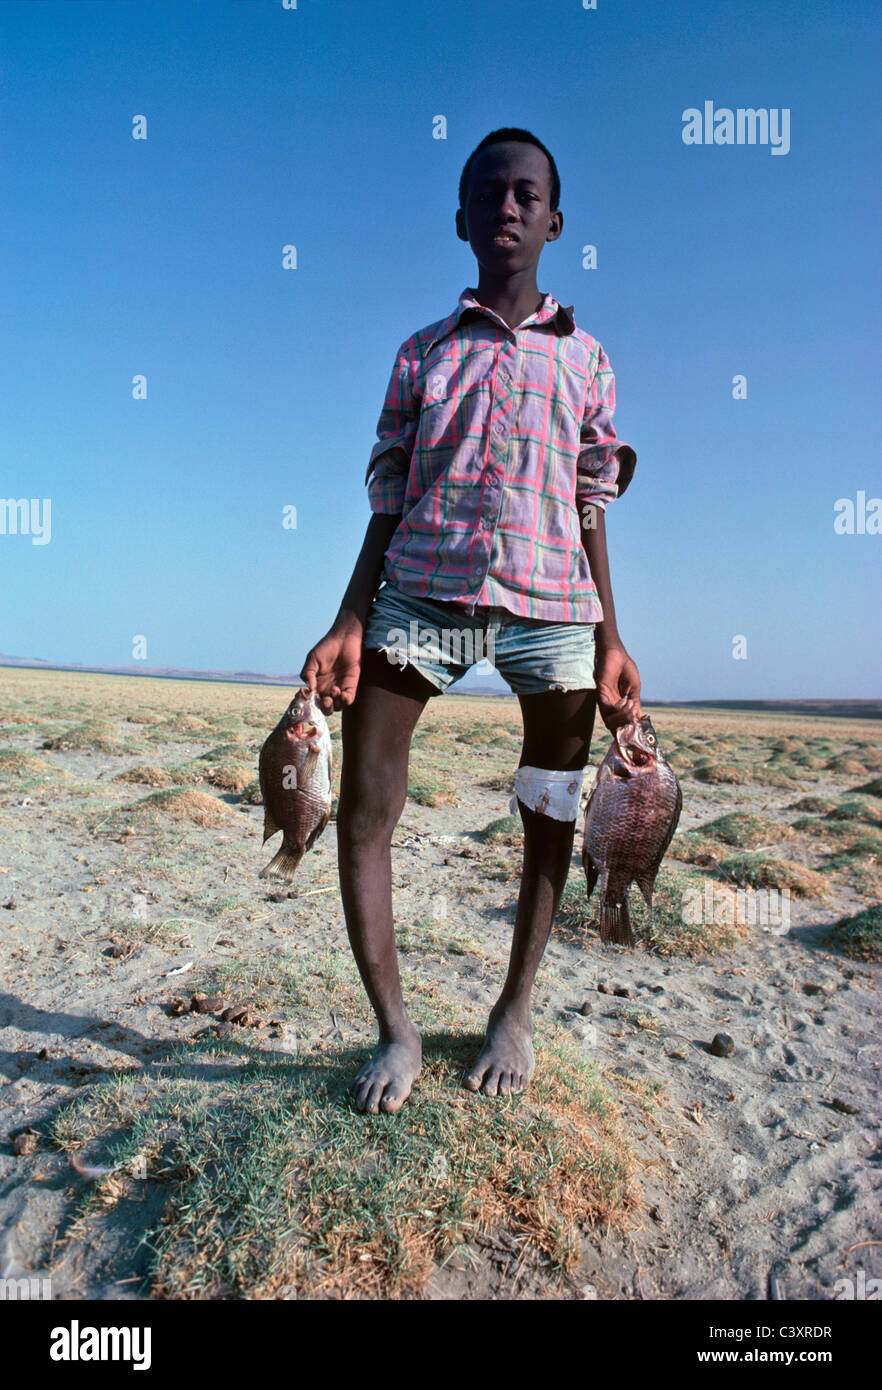 El Molo child suffering from Rickets. - Stock Image